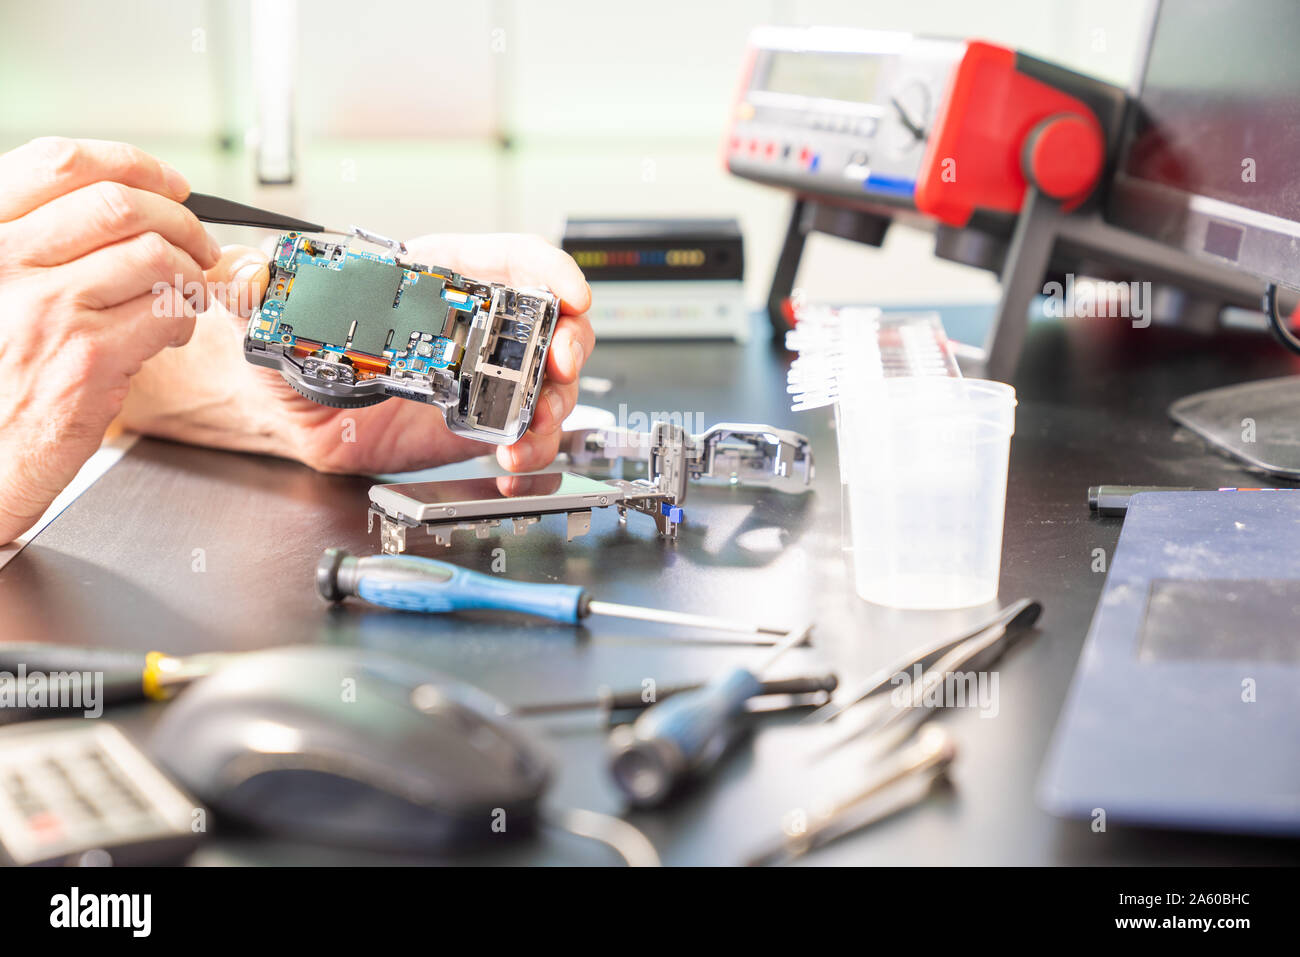 repair of photo camera in services support Stock Photo